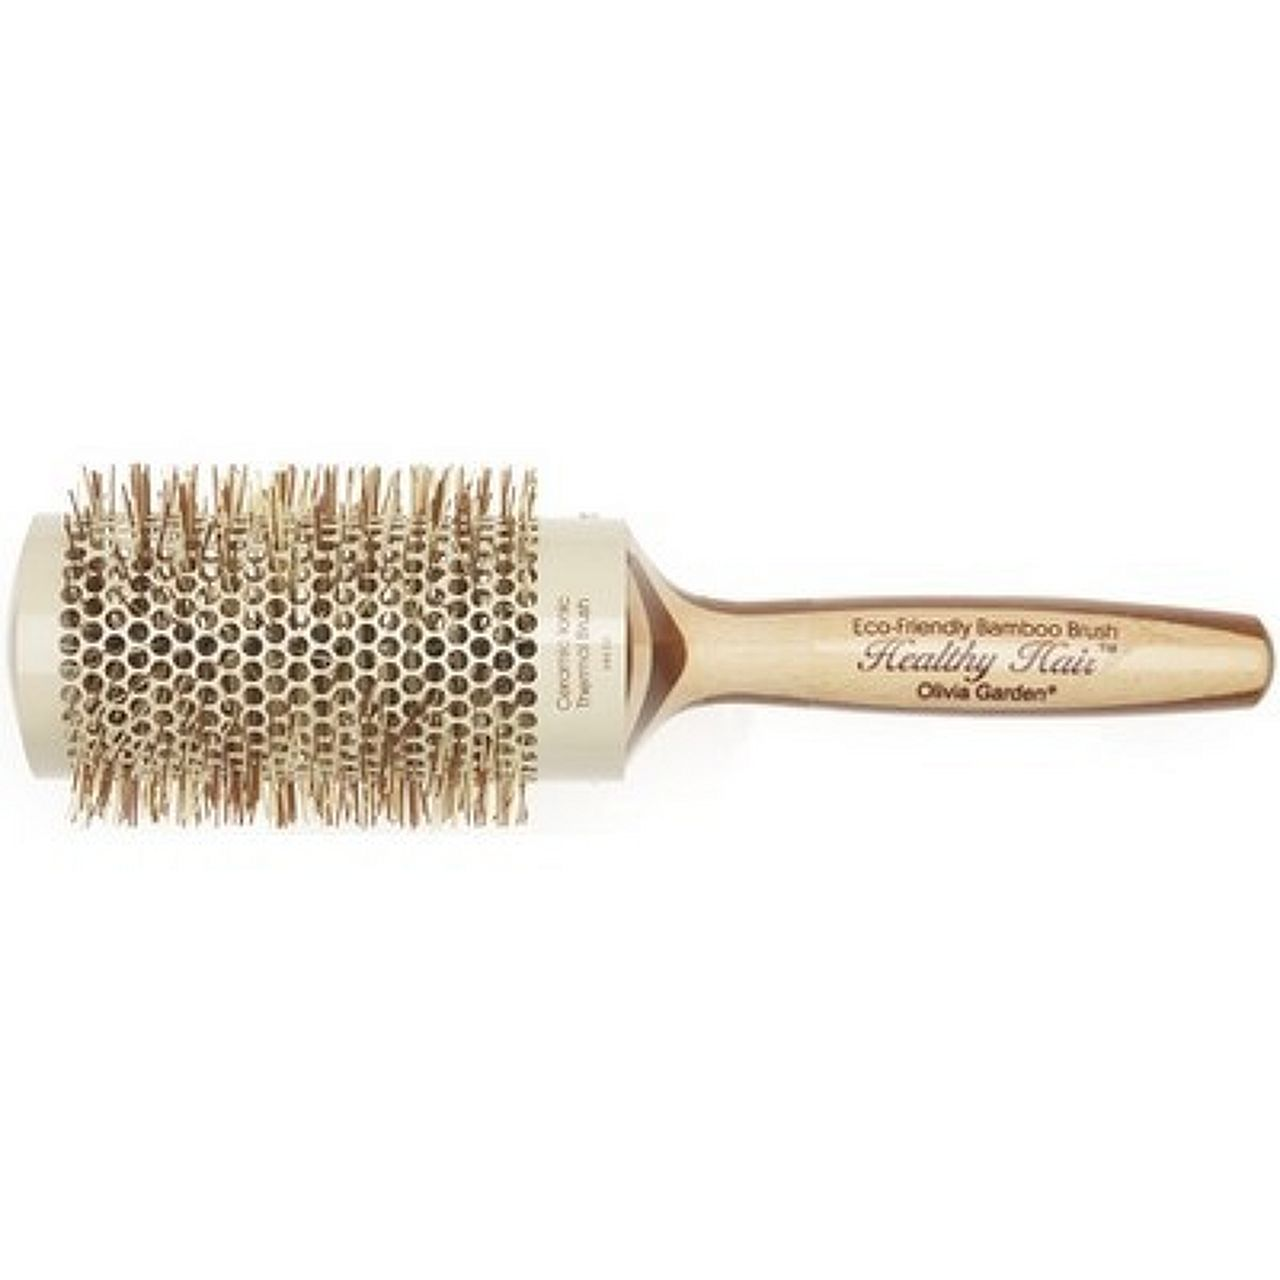 Olivia Garden Healthy Hair Thermal Brush - 2 1/2 inch